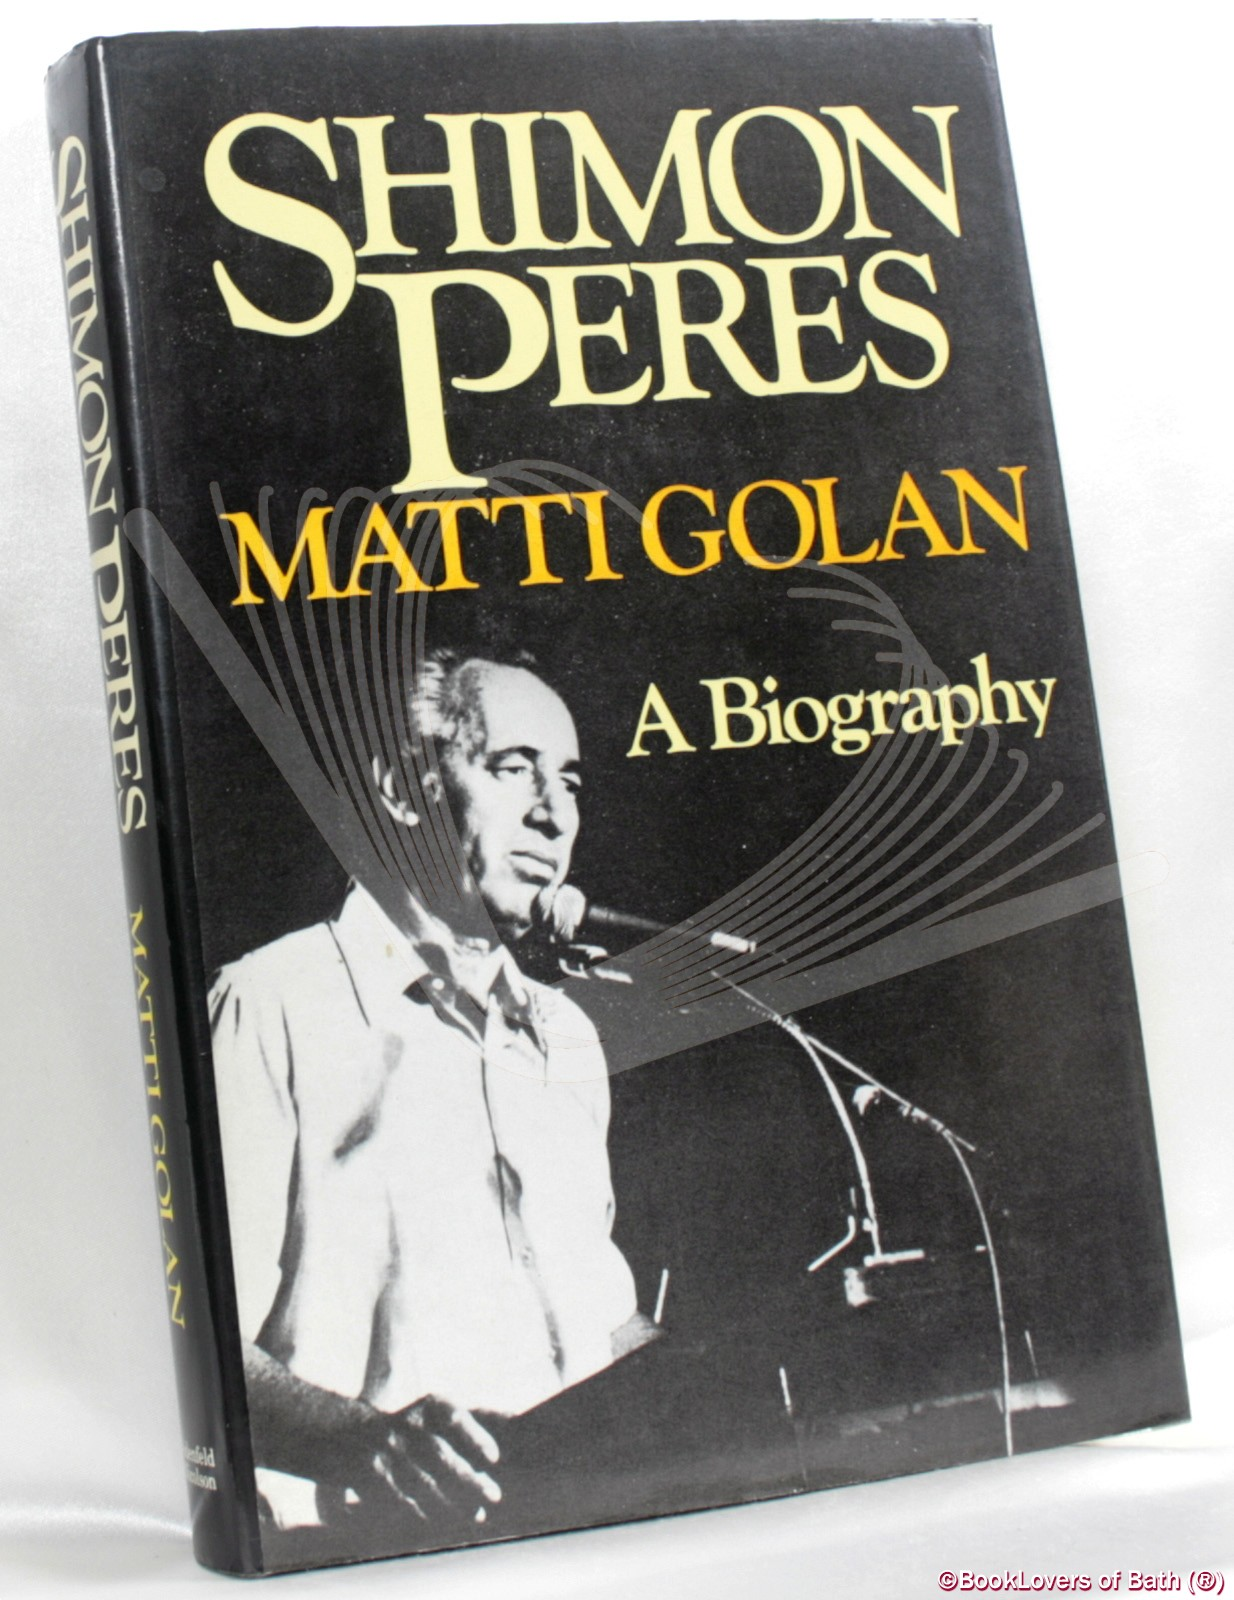 Shimon Peres: A Biography - Matti Golan